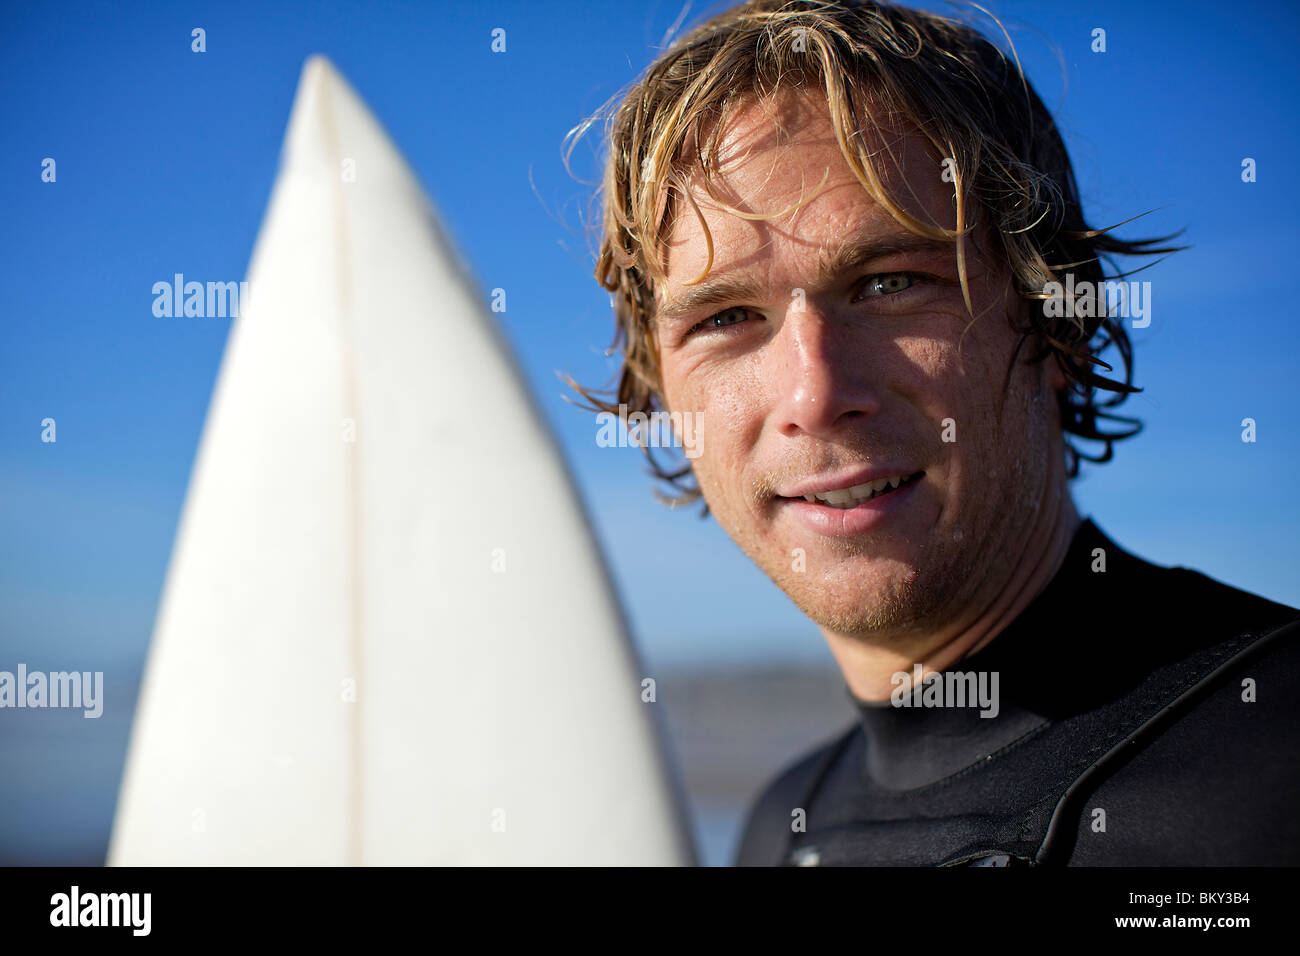 Young male surfer with wet hair at Pacific Beach in San Diego, California on a sunny day looks straight at the camera - Stock Image